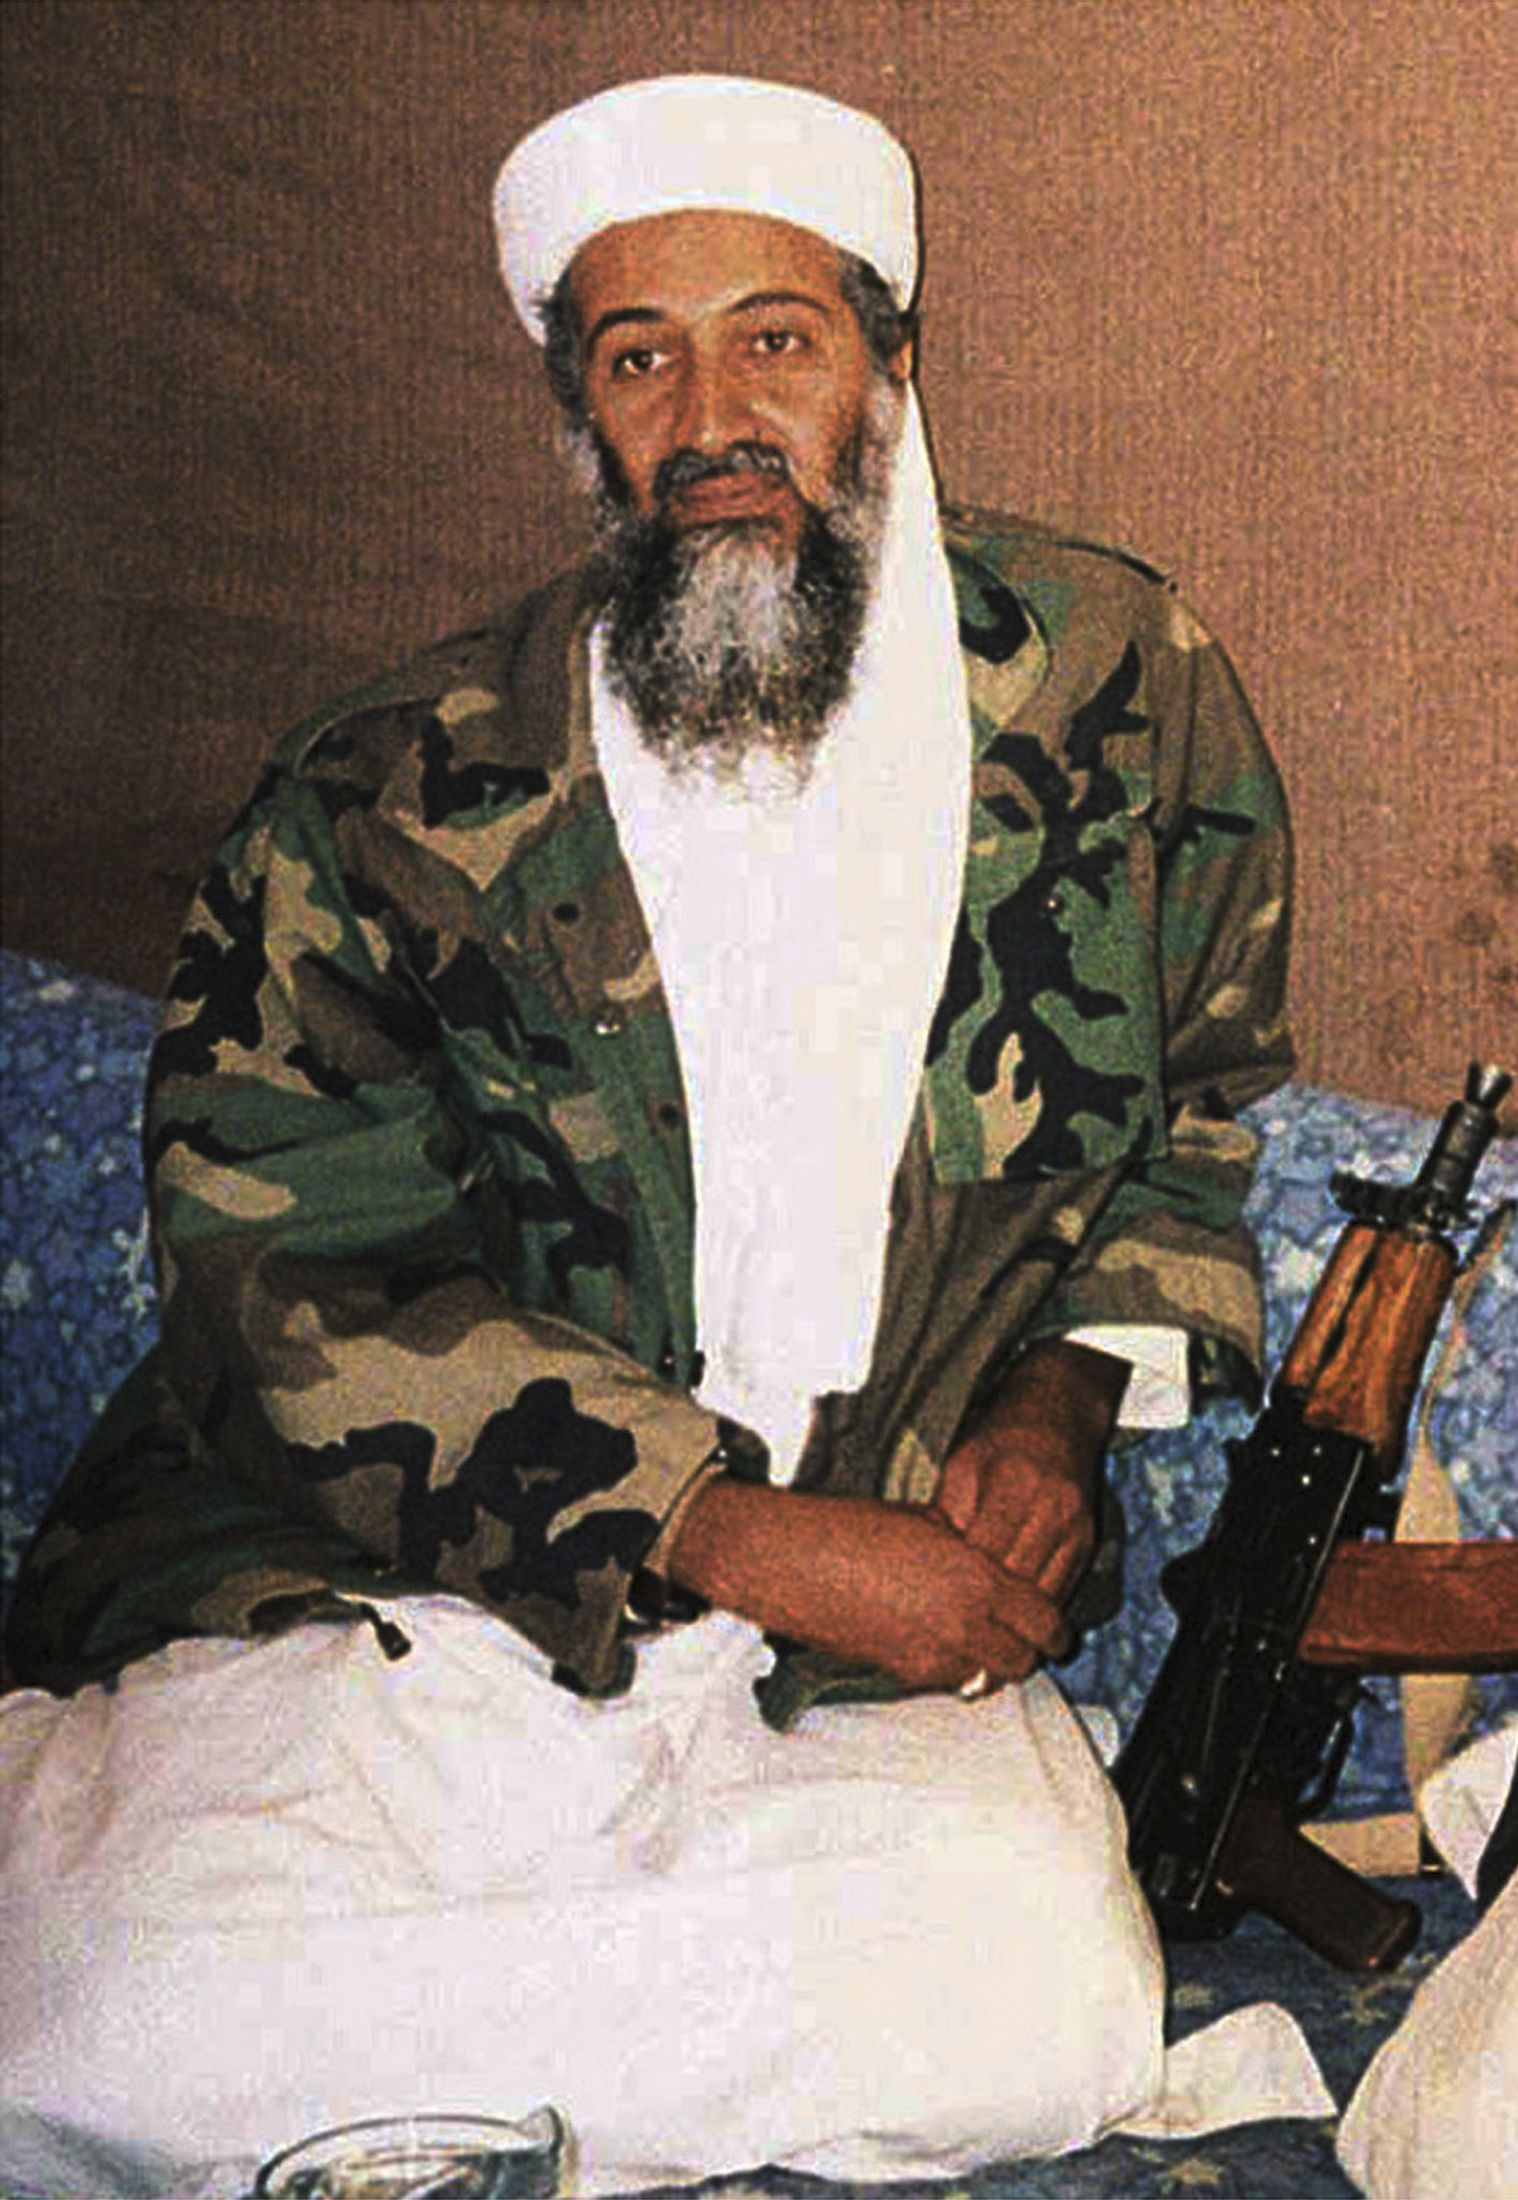 Bin Laden's Son Married Daughter of 9/11 Hijacker, Family Says